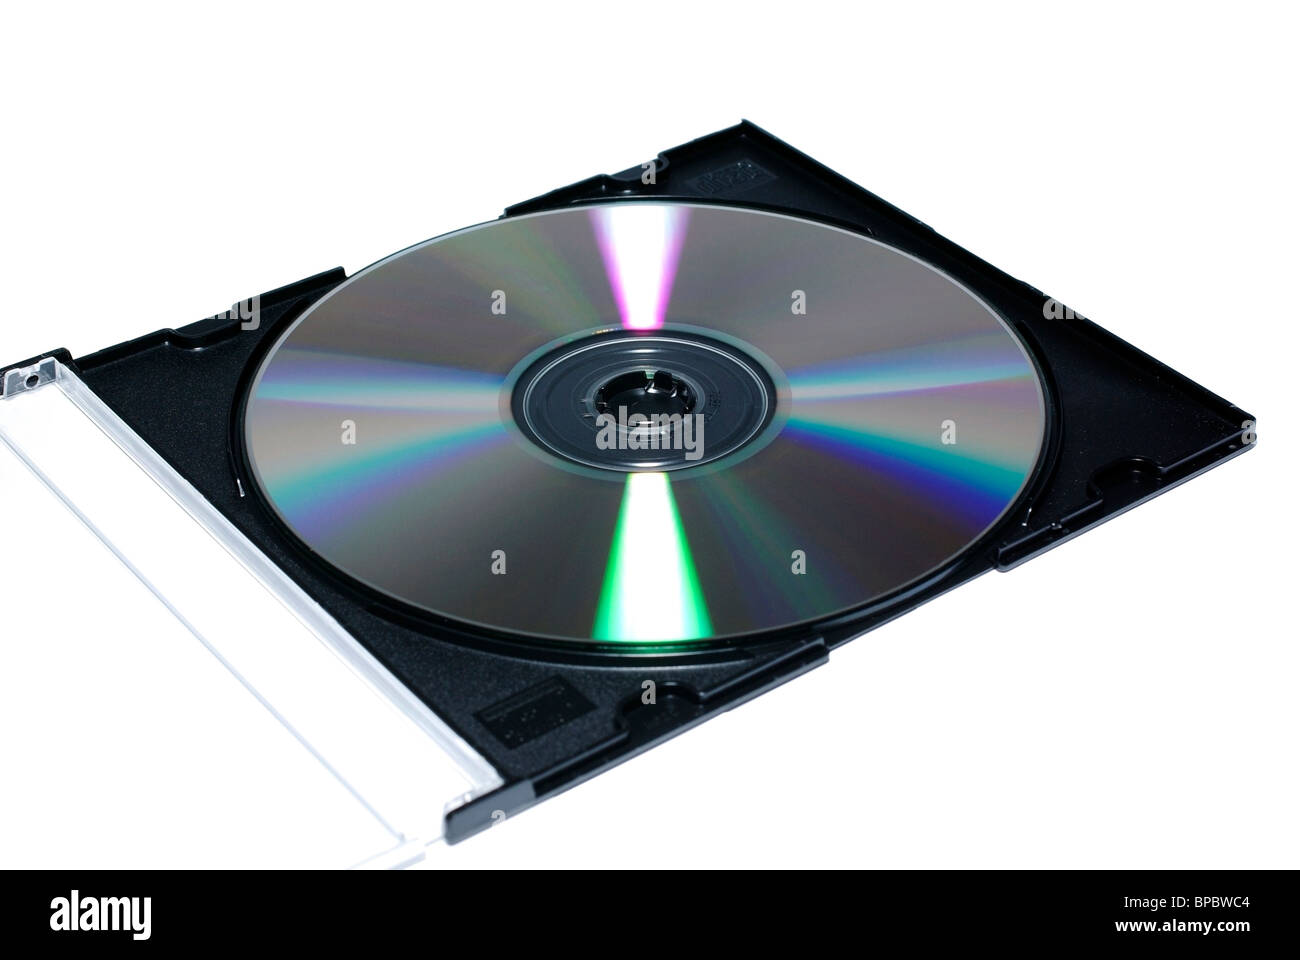 Opened jewel case with recordable disc. Isolate on white. - Stock Image